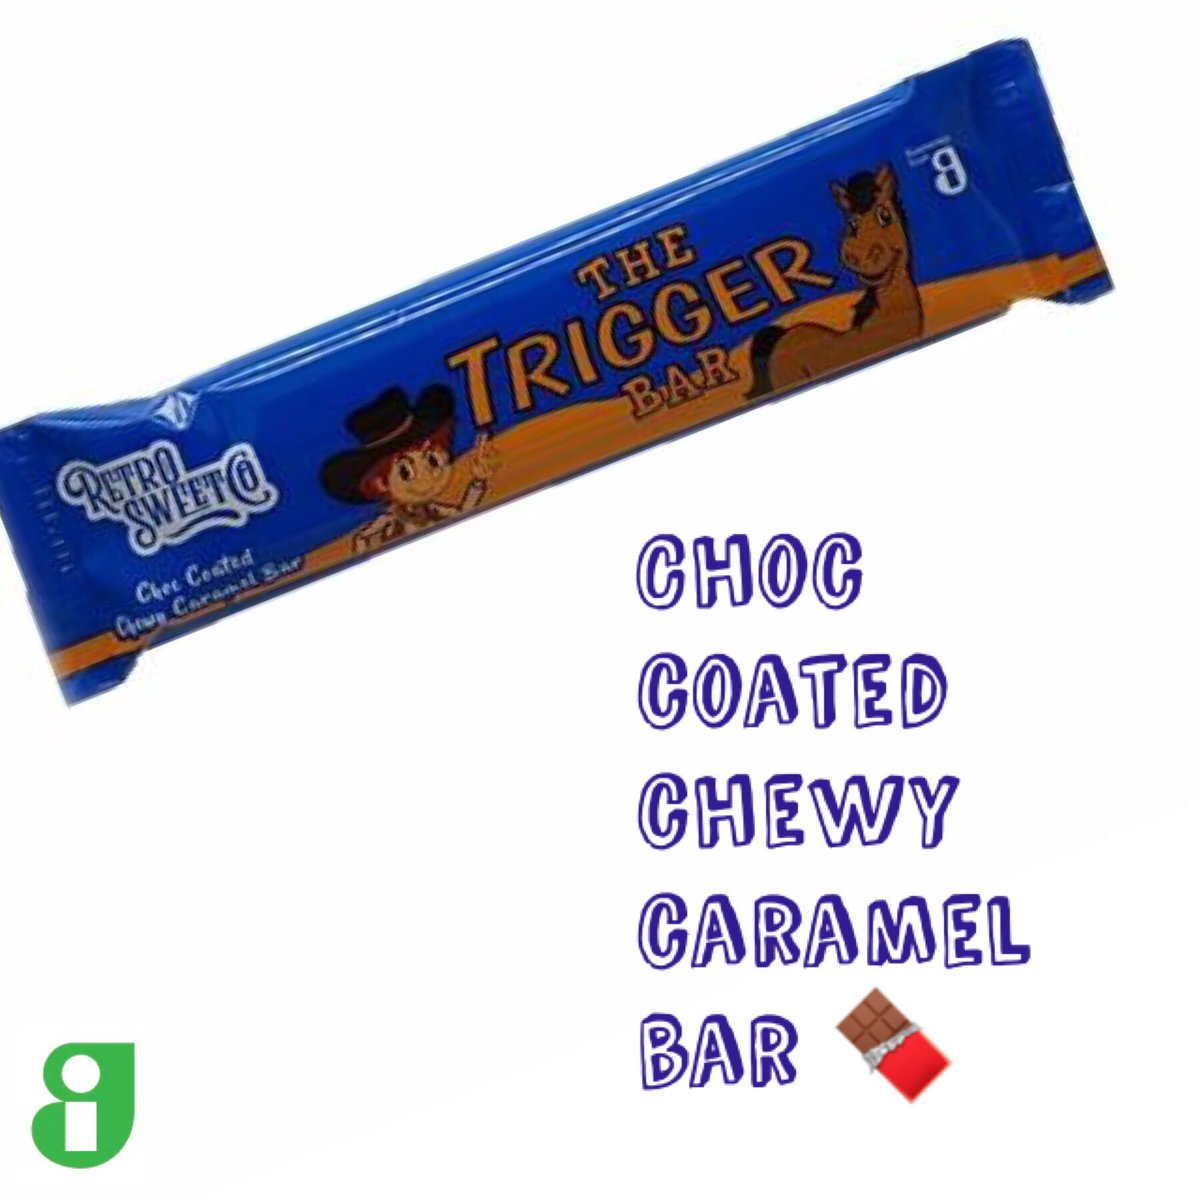 Retrosweetco On Twitter The Trigger Bar